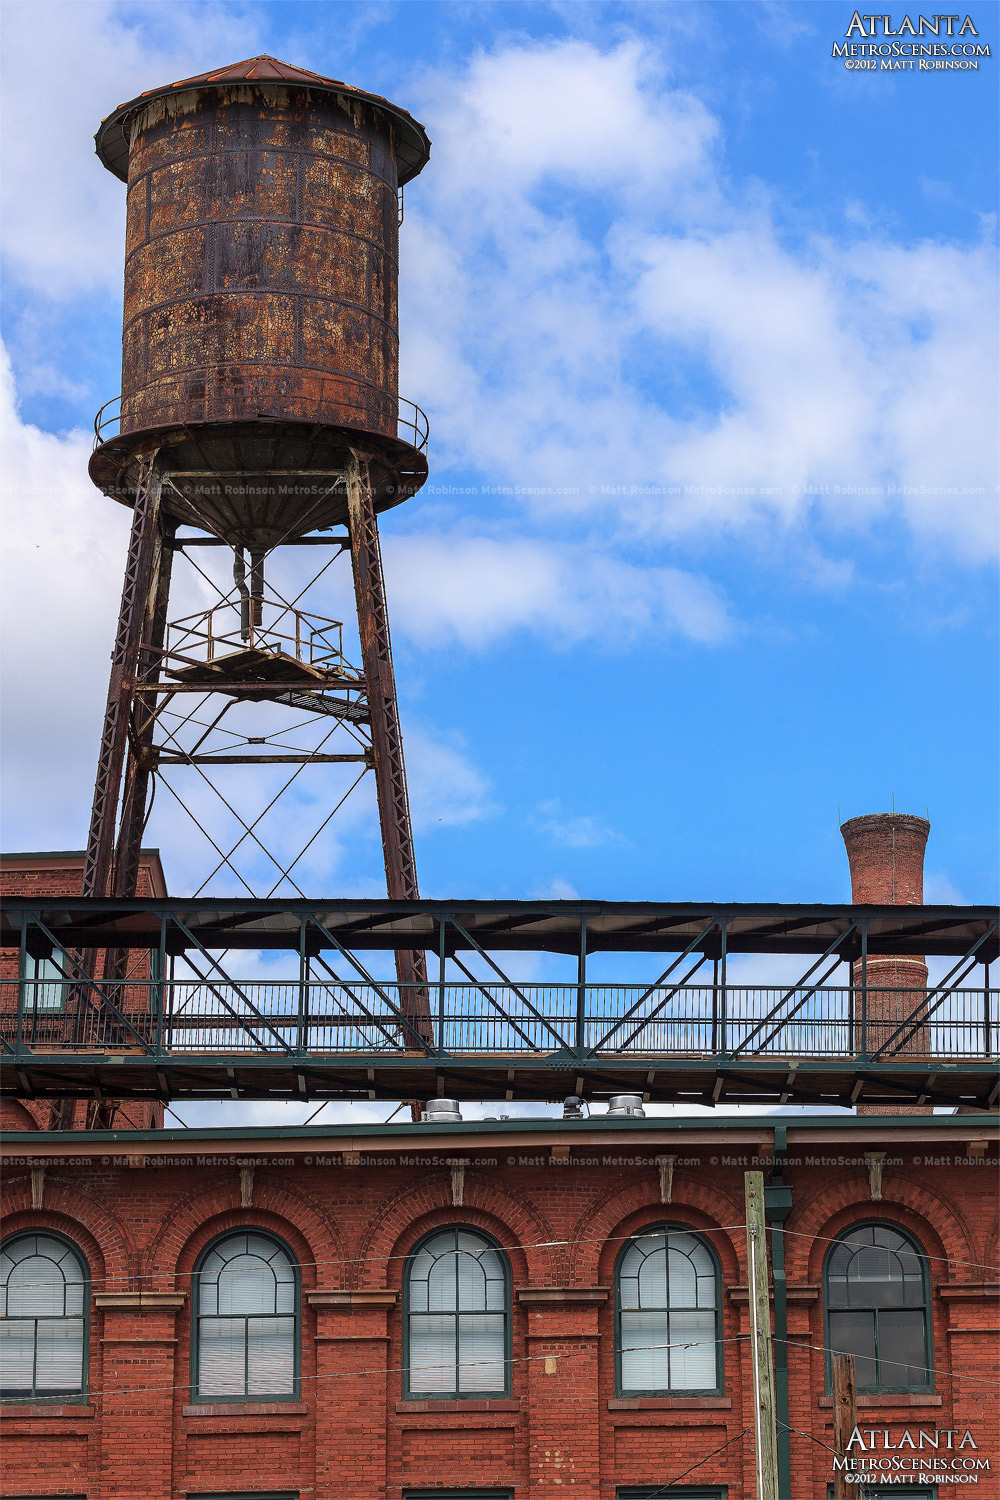 The Fulton Bag and Cotton Mill